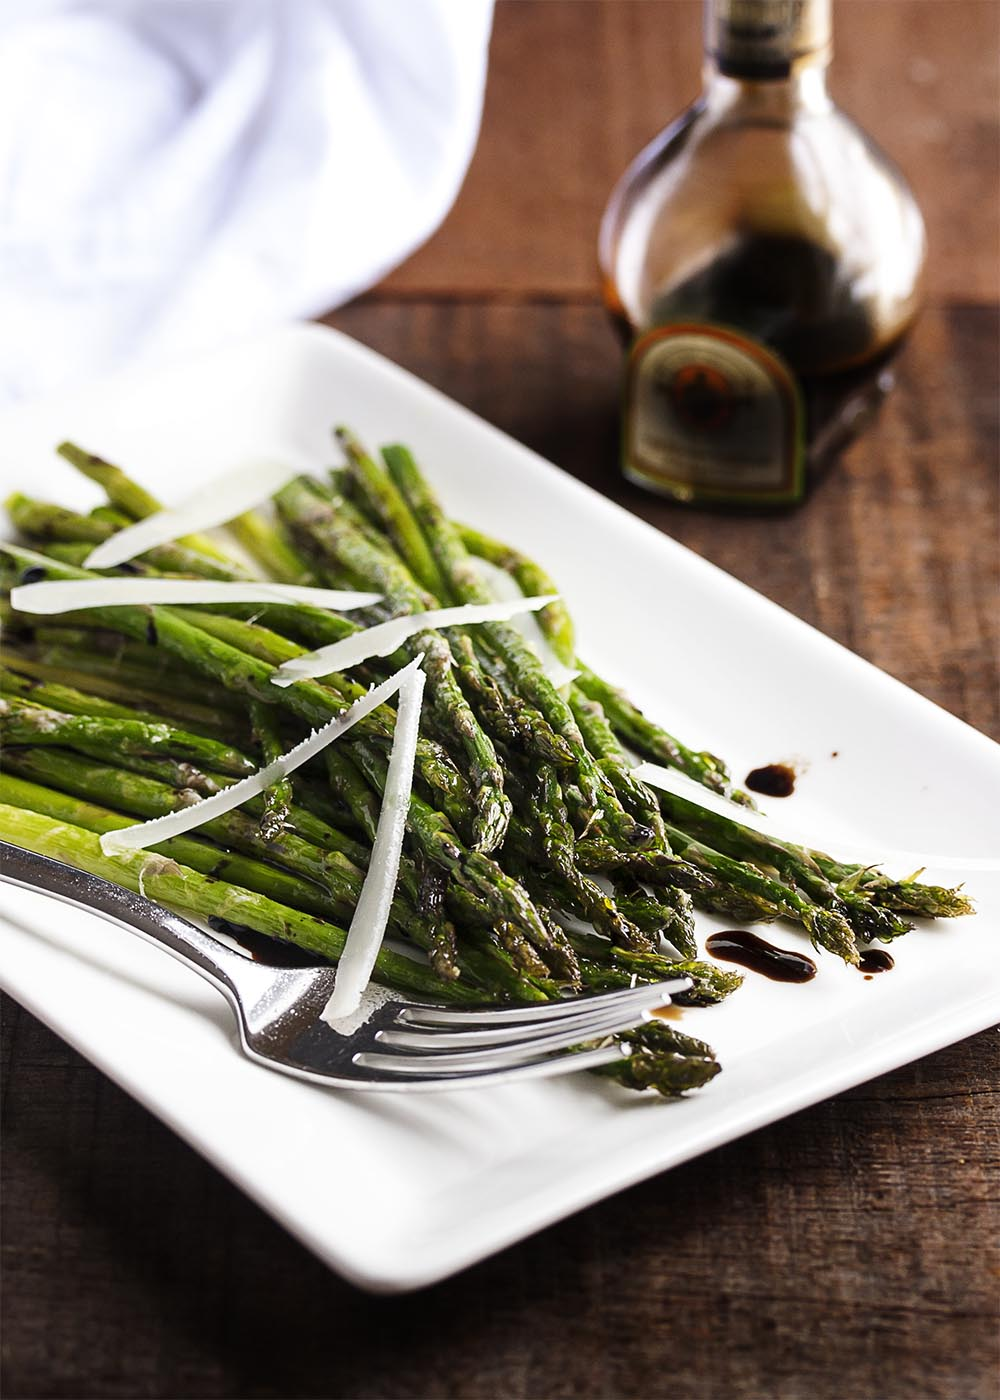 Roasted Asparagus with Parmesan and Balsamic - Asparagus is tossed with olive oil and parmesan before being roasted until crisp tender and then sprinkled with balsamic vinegar. An easy and flavorful side dish. | justalittlebitofbacon.com